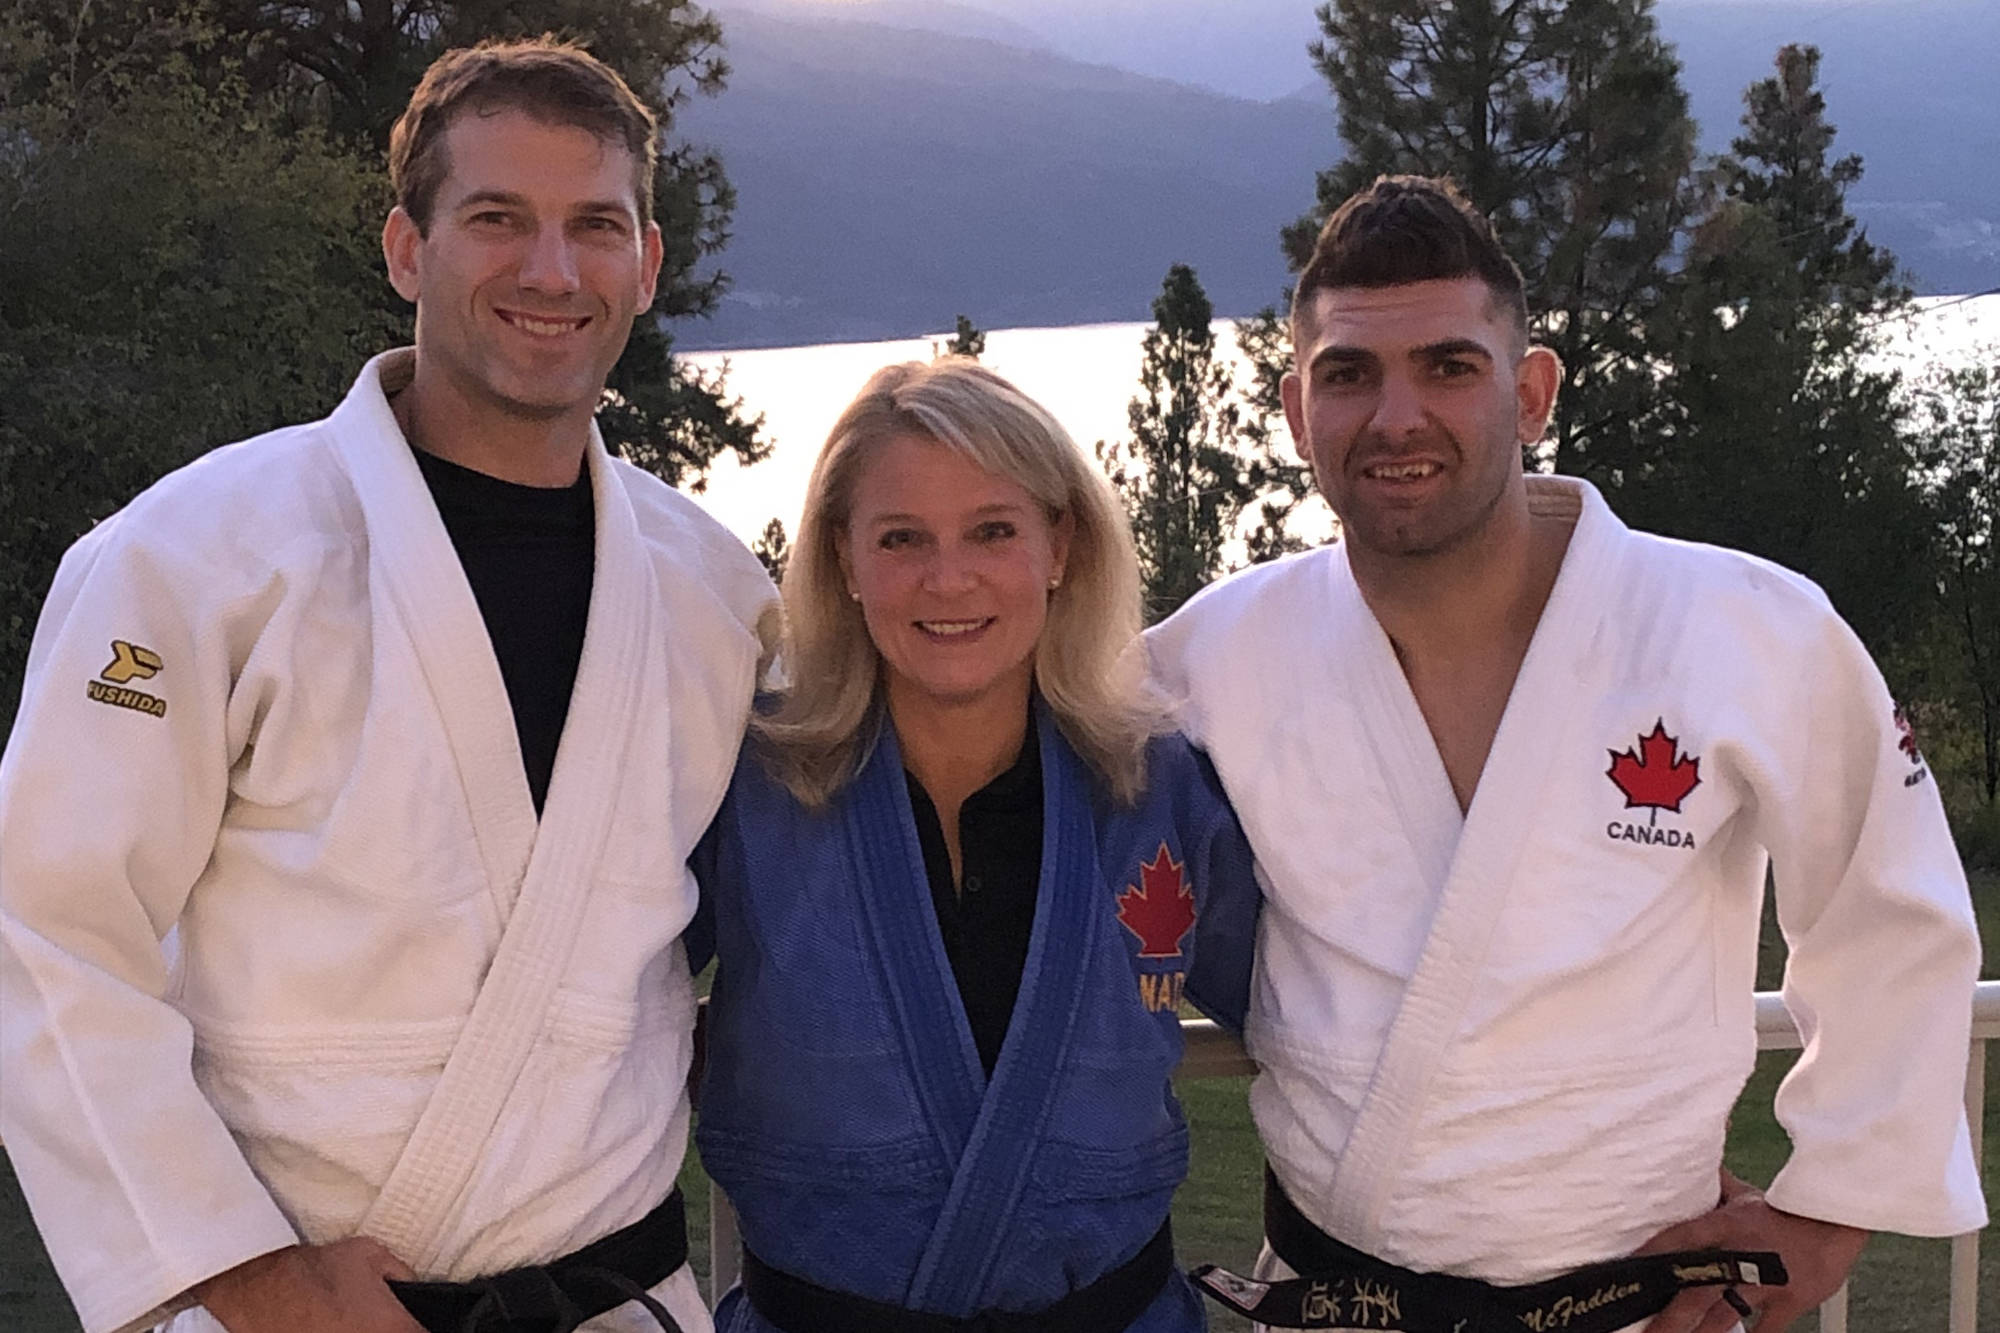 (From left) Chris Smiley, Kathy Hubble and Aaron McFadden are taking over the Lake Country Judo Club to help keep the local club strong. (Kathy Hubble)